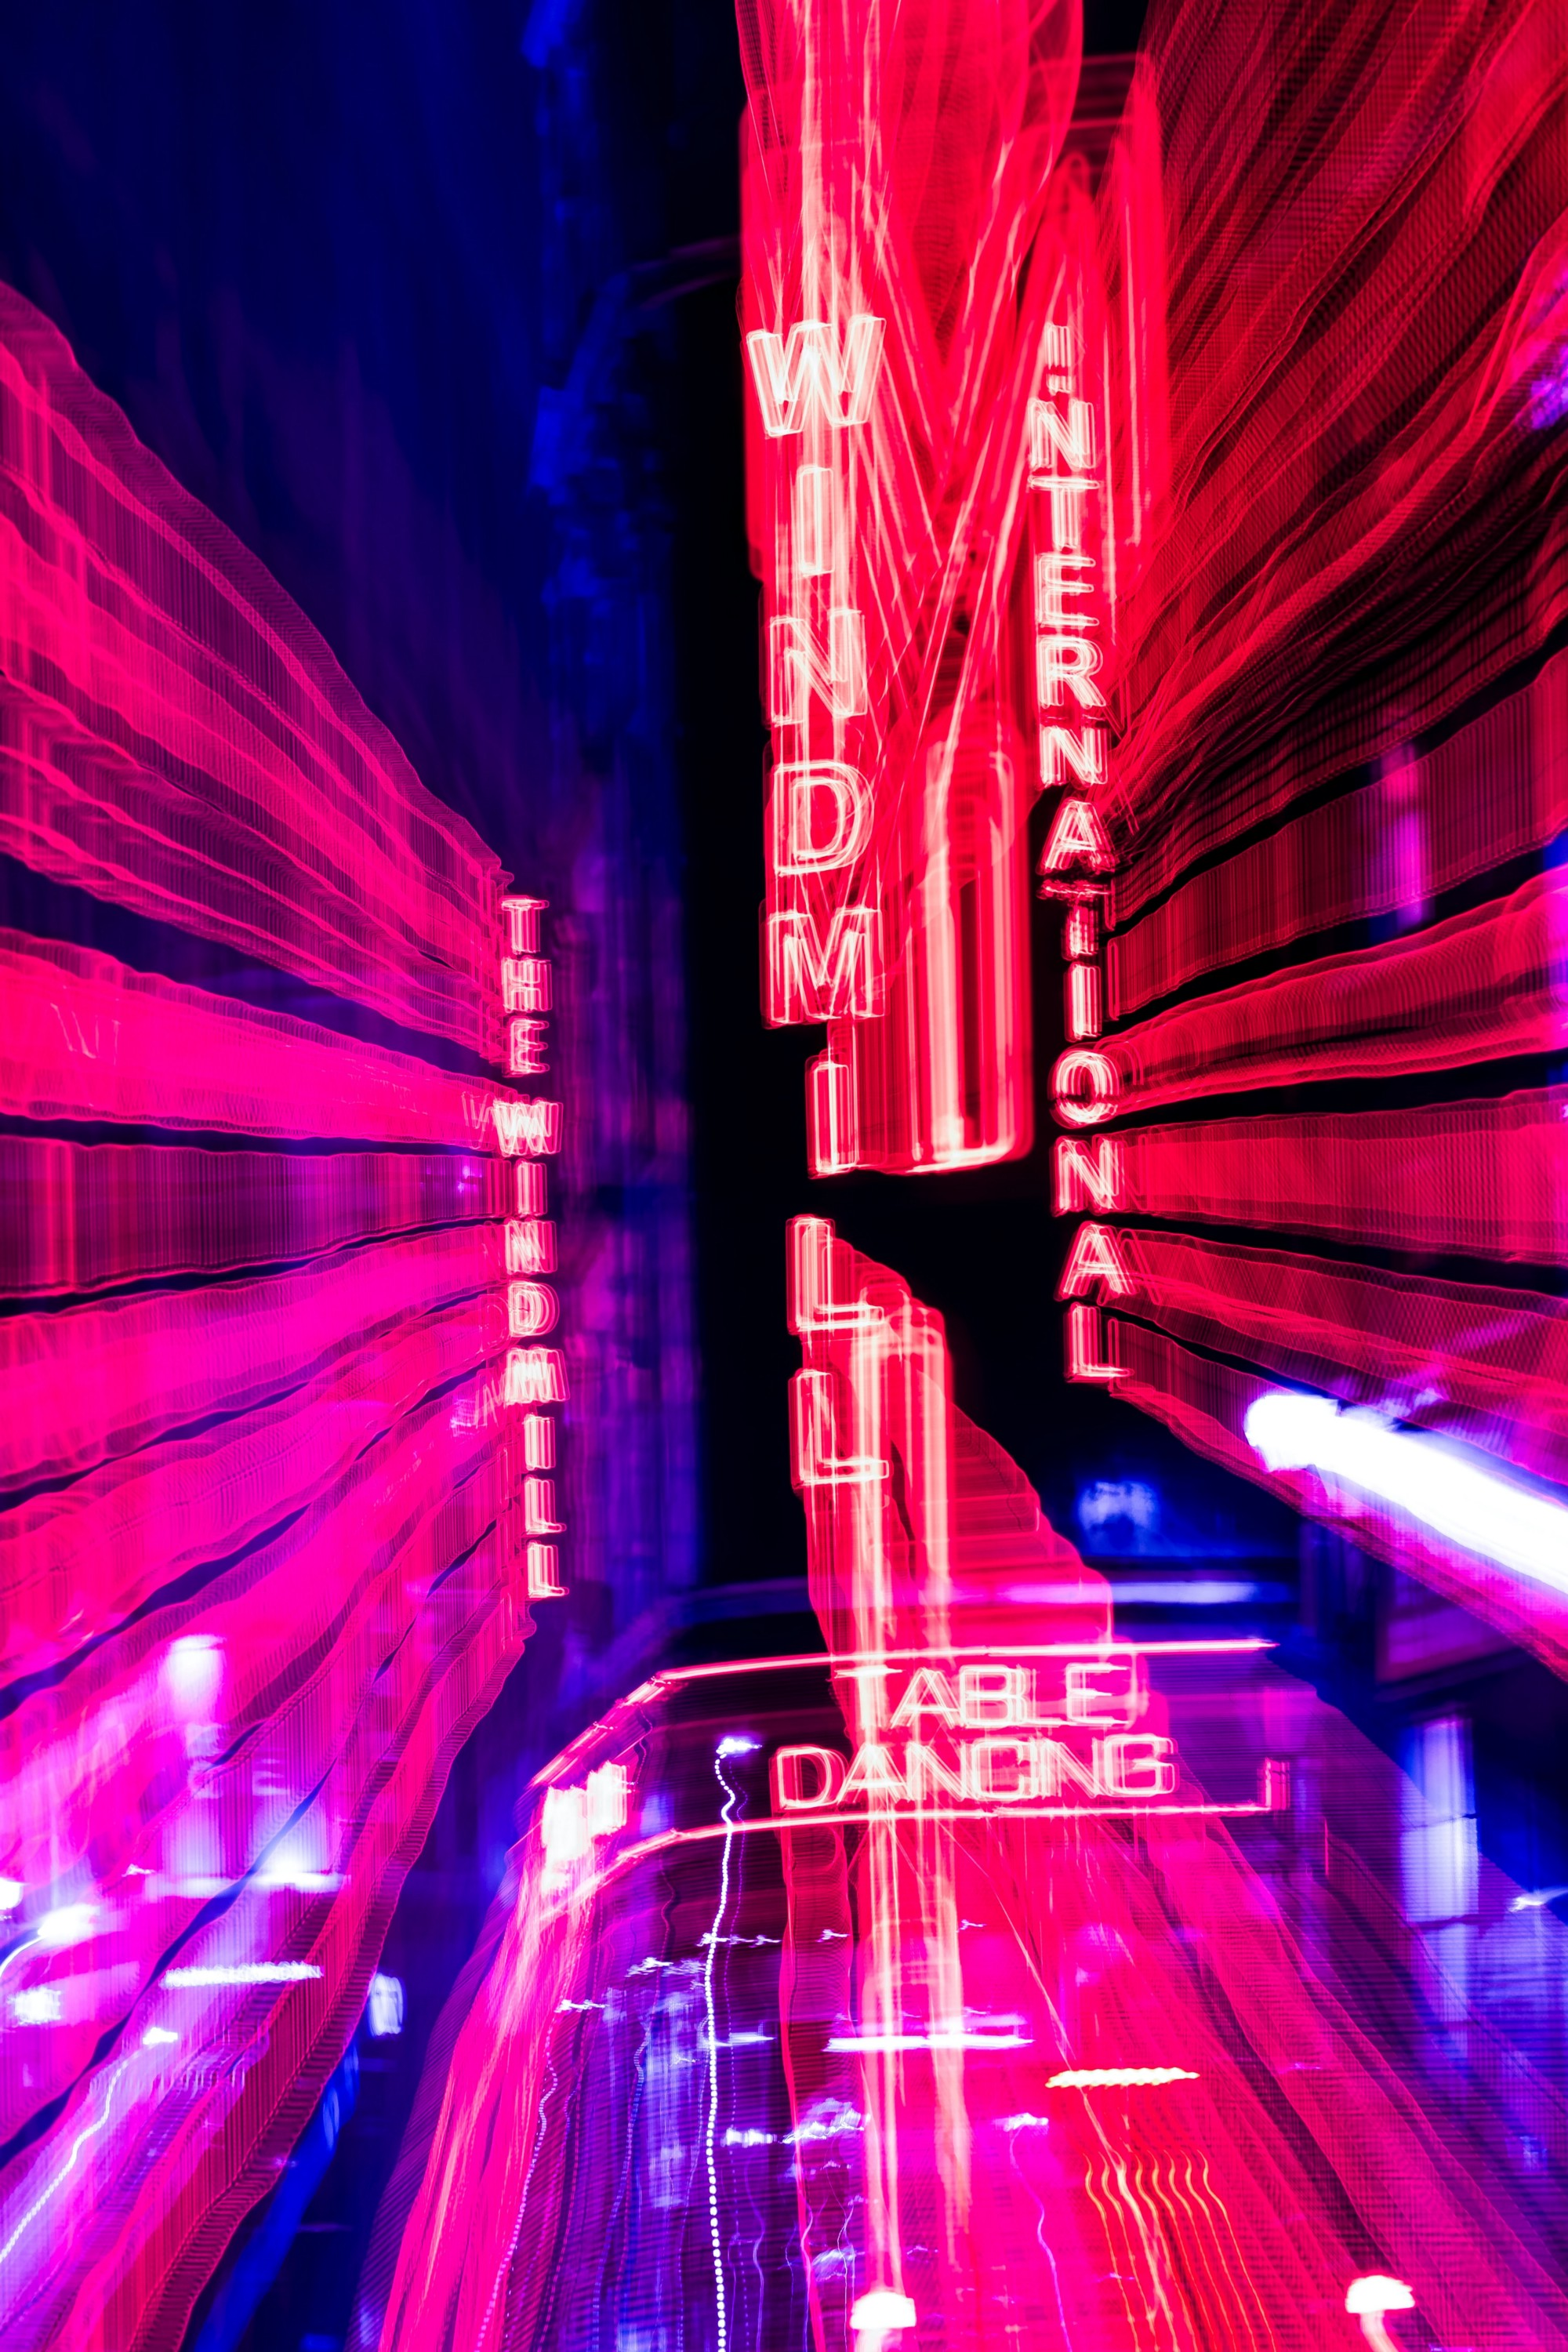 street illuminated by crazy neon lights